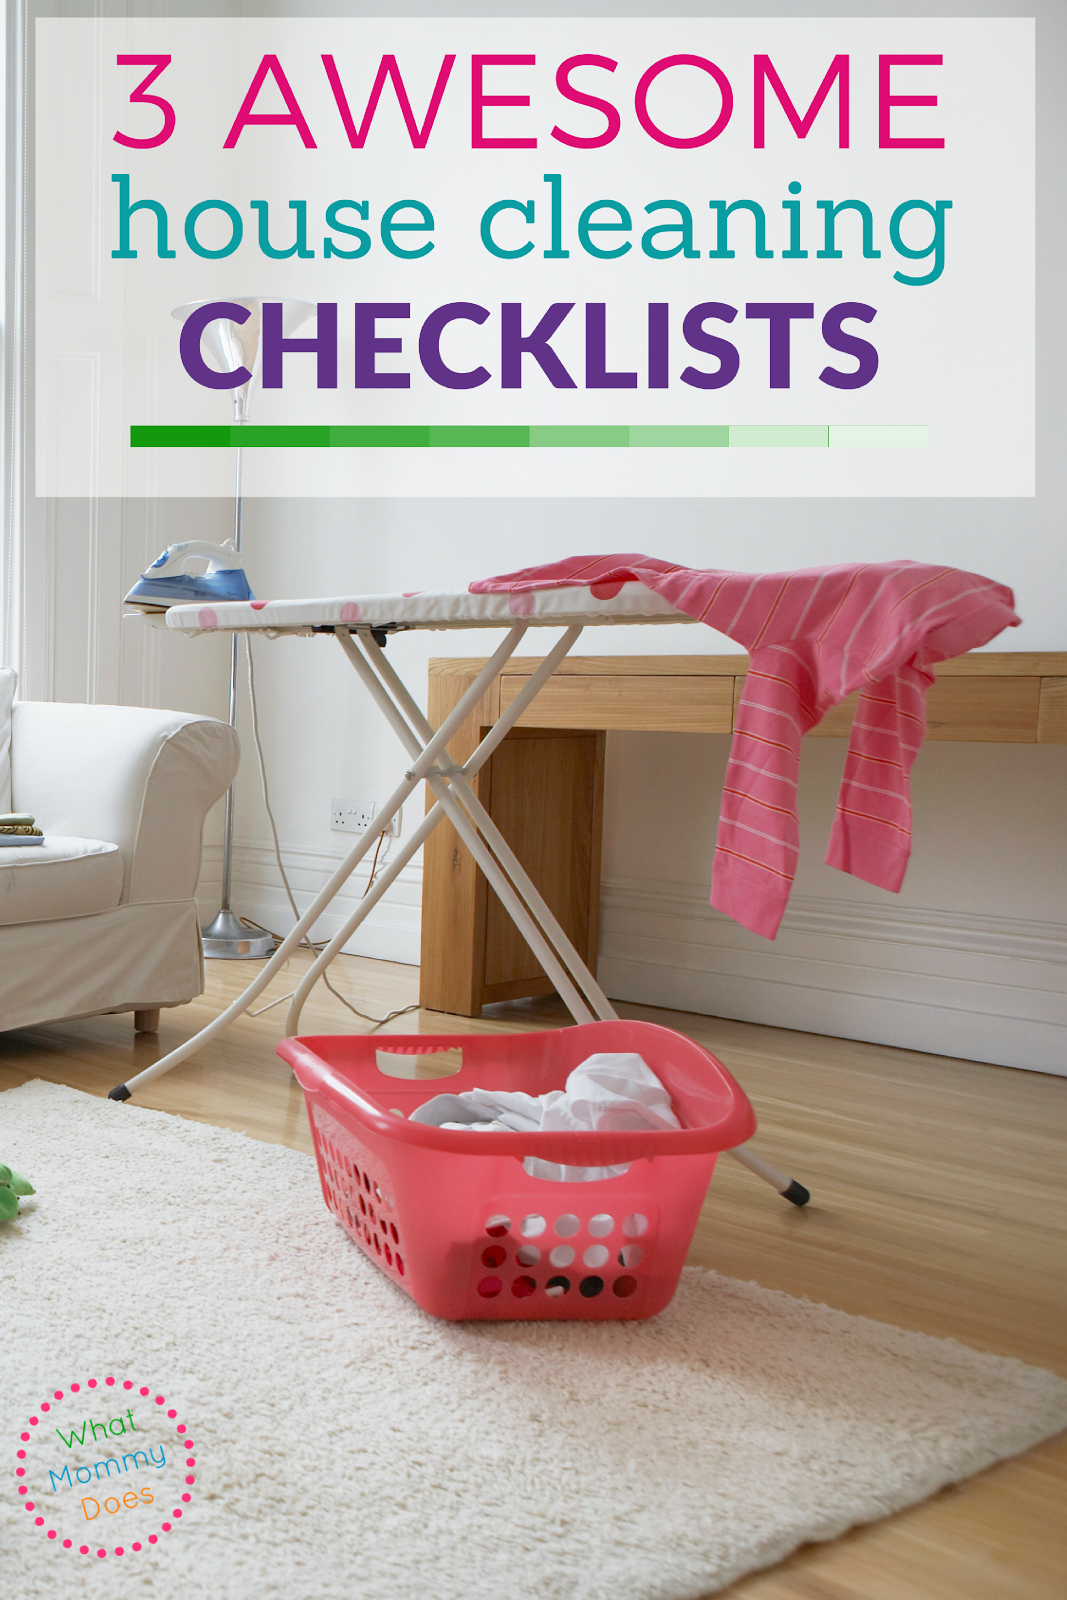 Use a house cleaning checklist to keep your home tidy! This resource provides a list of great weekly chore charts and checklists that are free to download!!